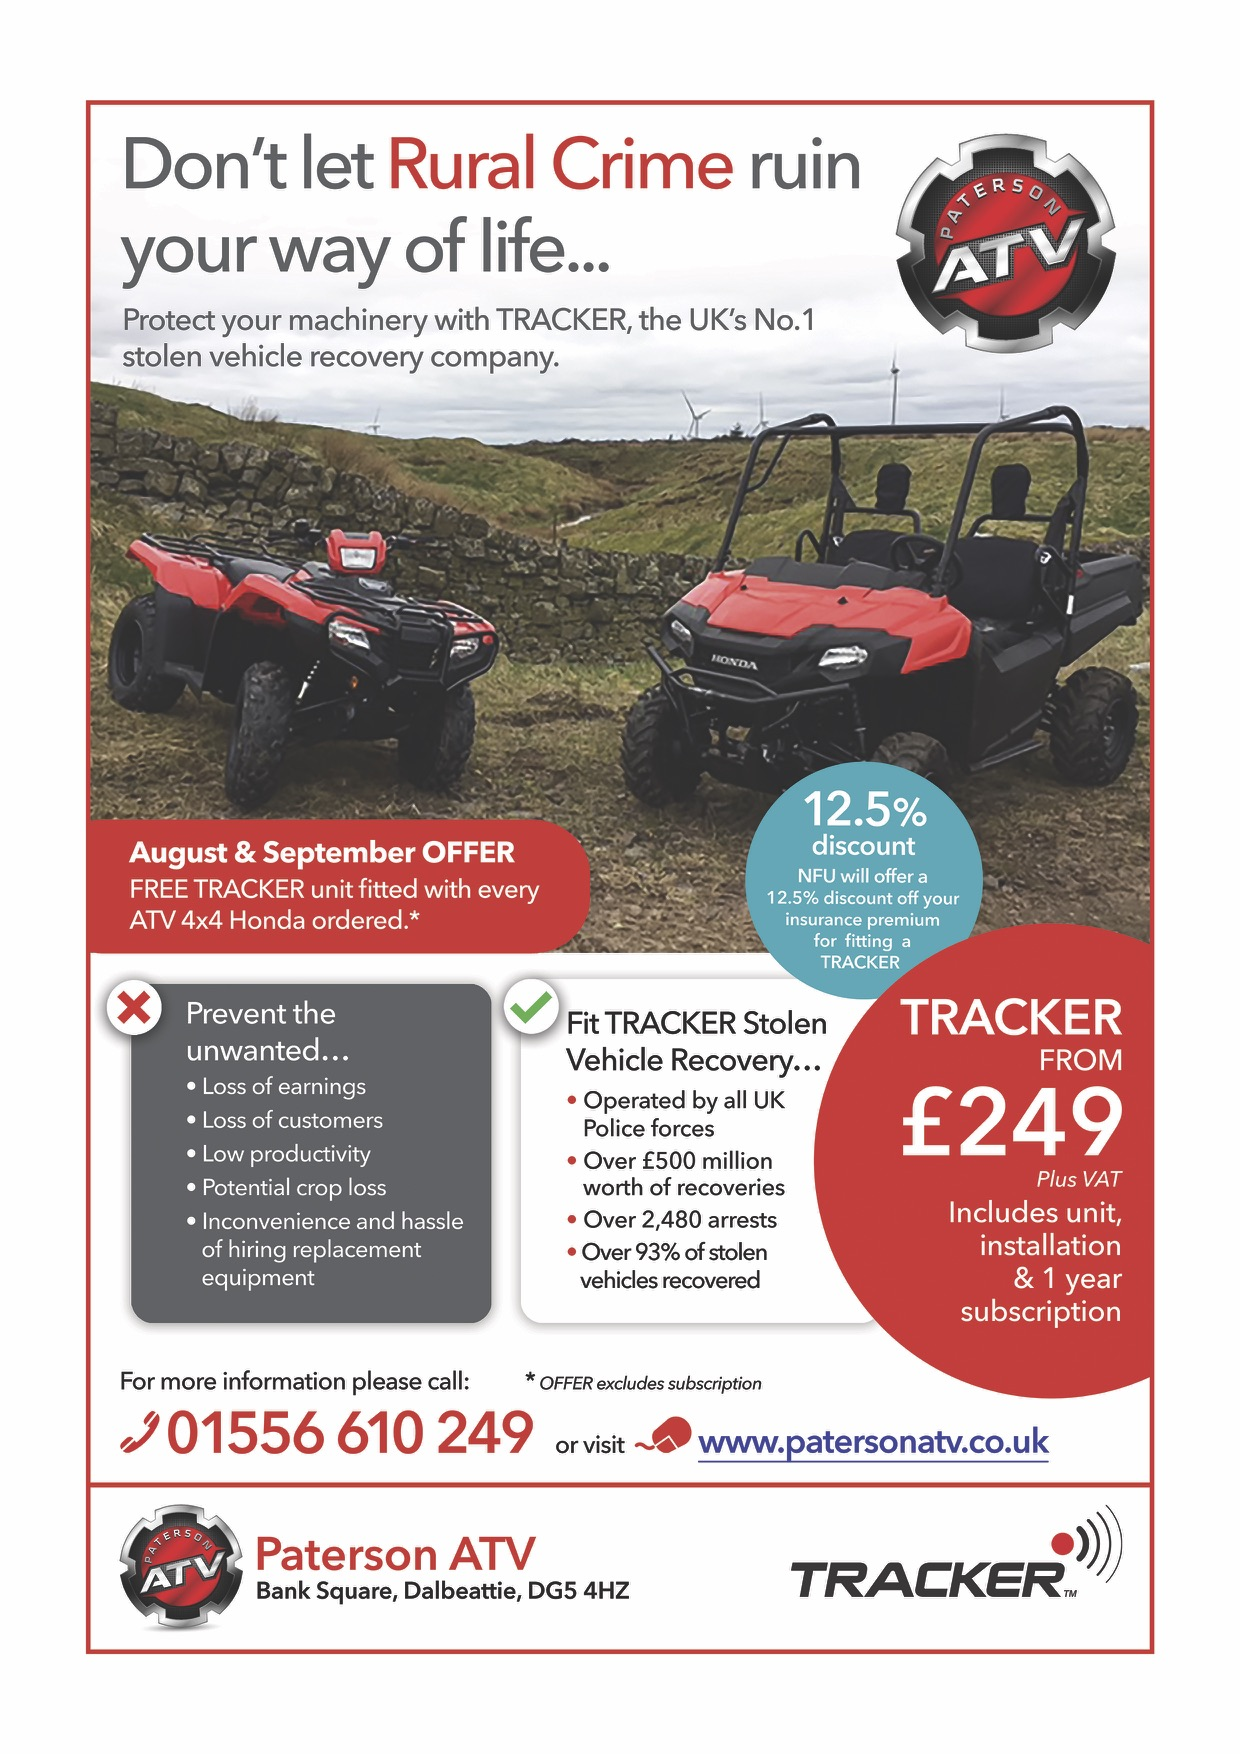 Advert about the Paterson ATV special Tracker installation offer August and September 2017